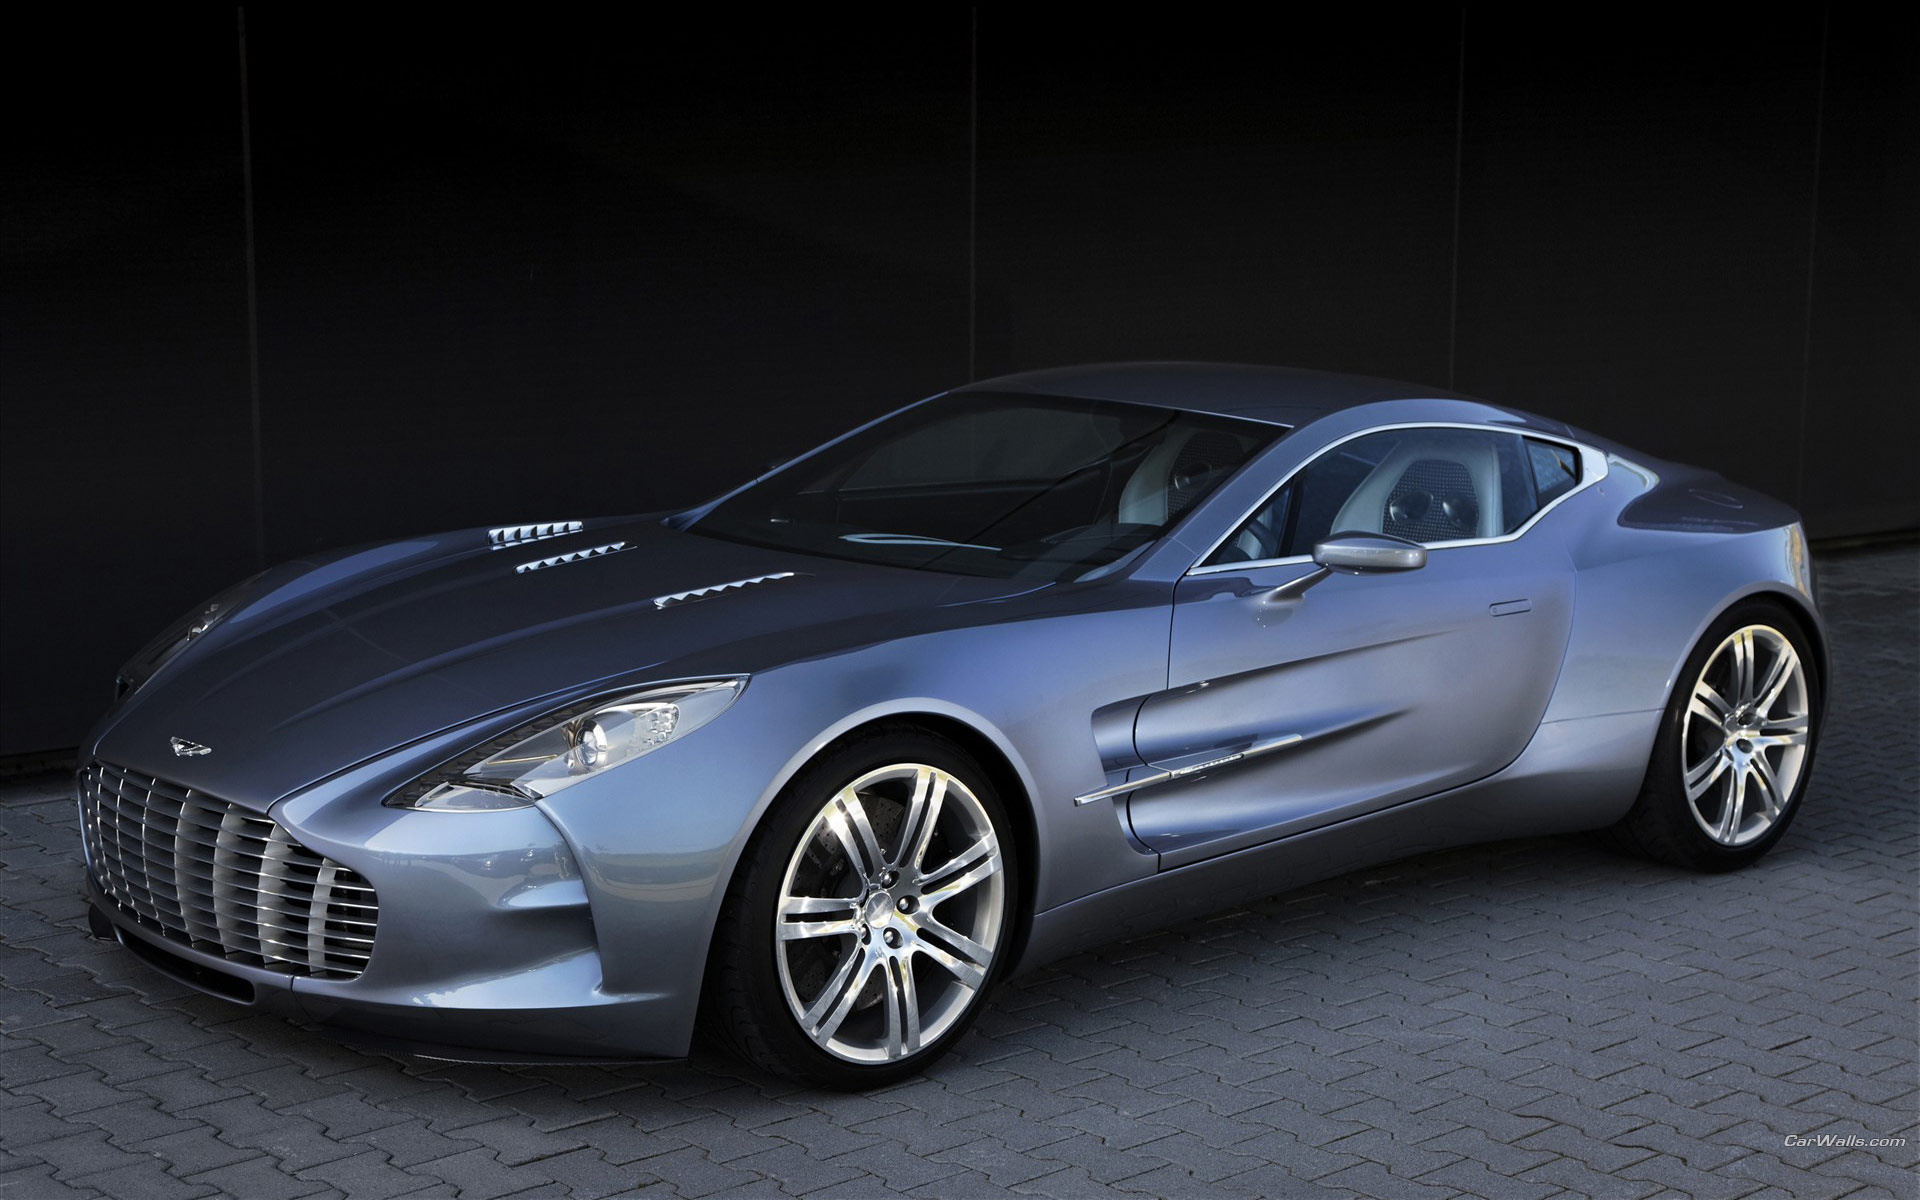 aston martin one77 wallpapers pictures images